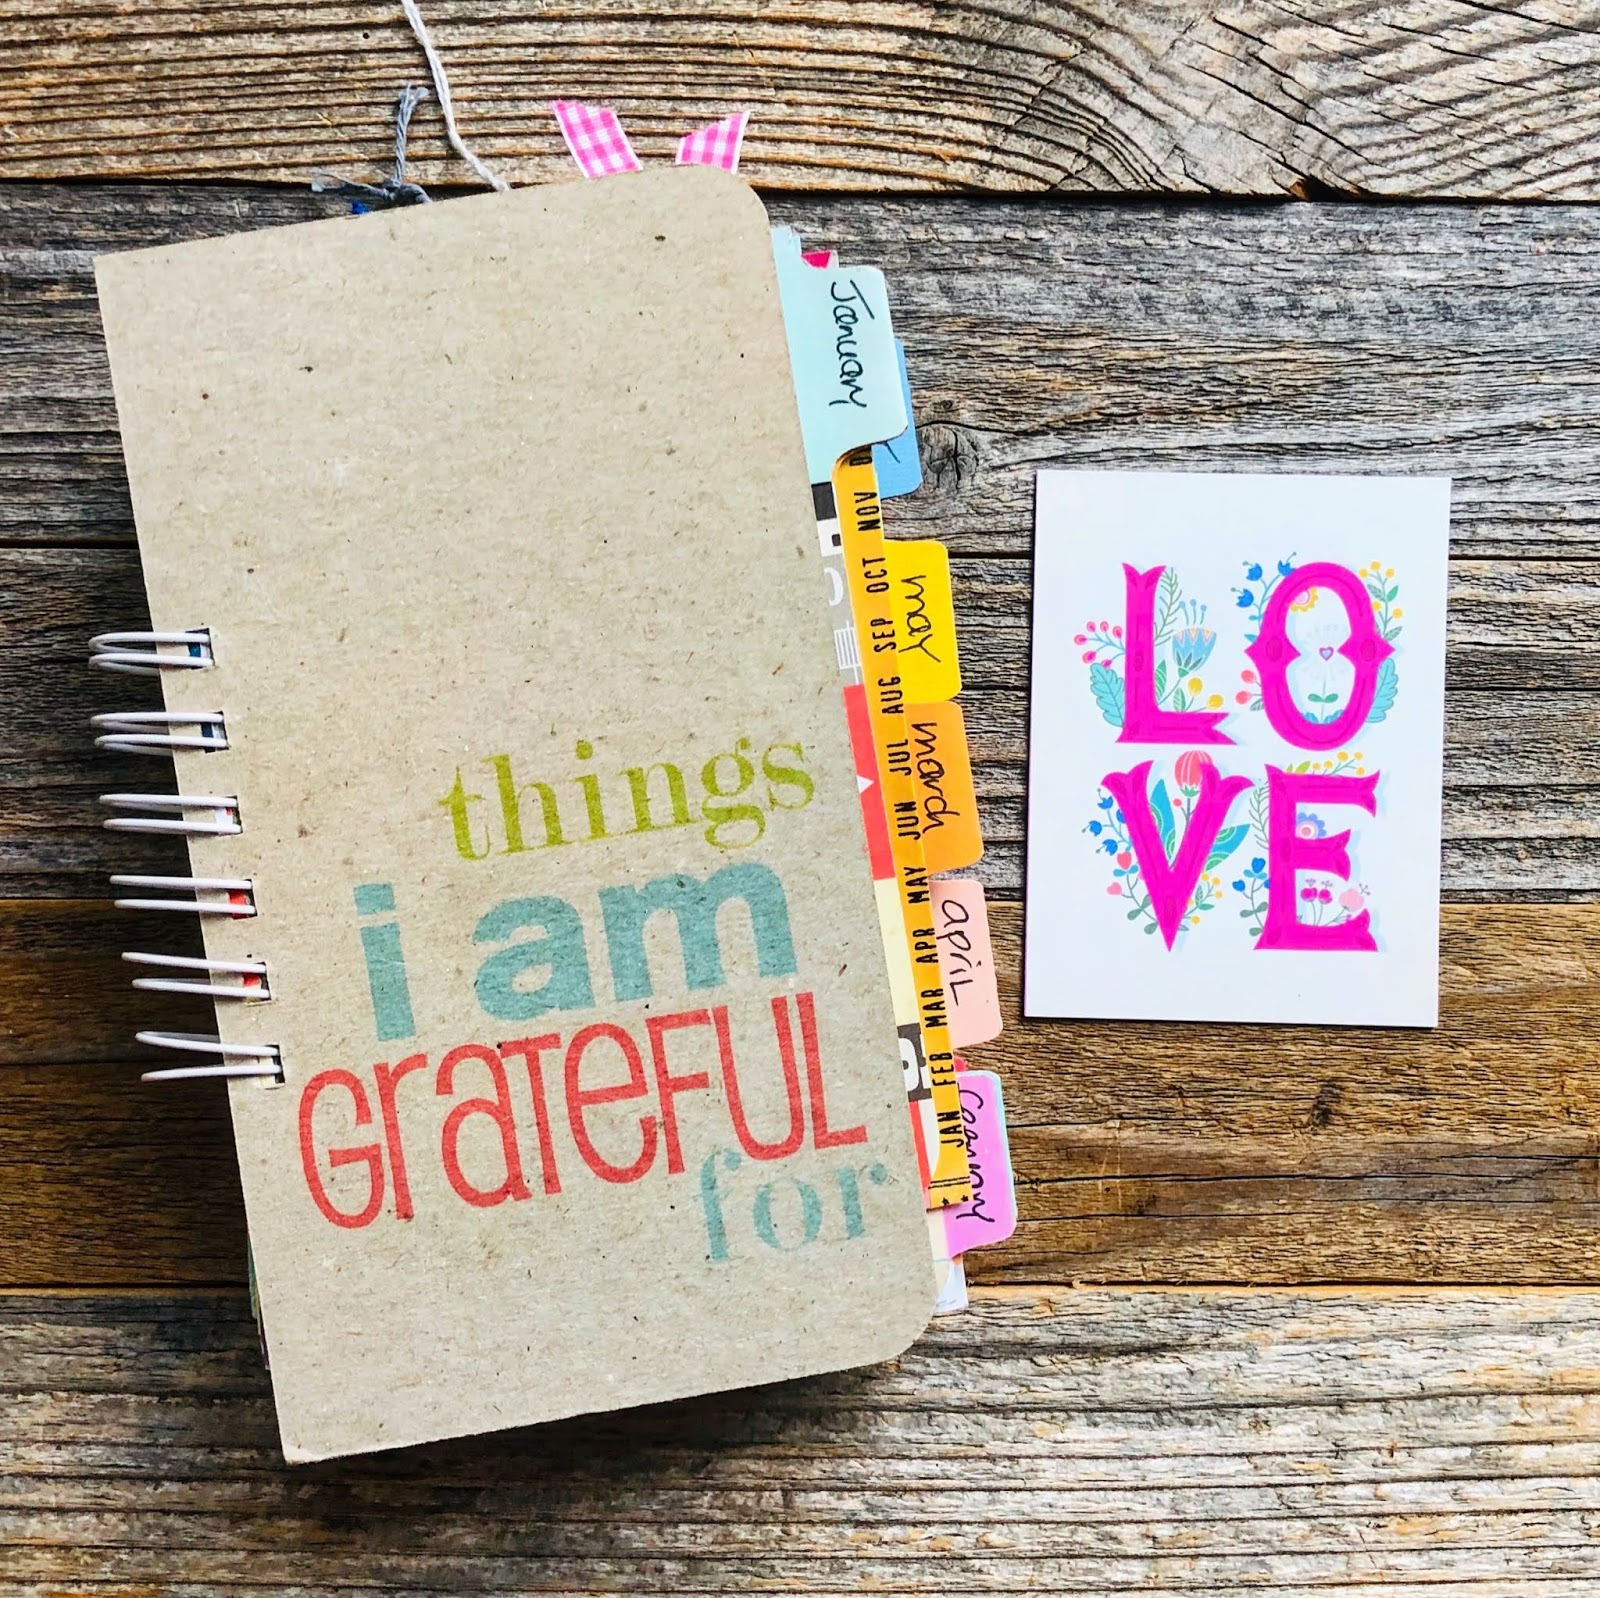 #gratitude #gratitude journal #gratefulnes #i am thankful for #365 Things #thankful journal